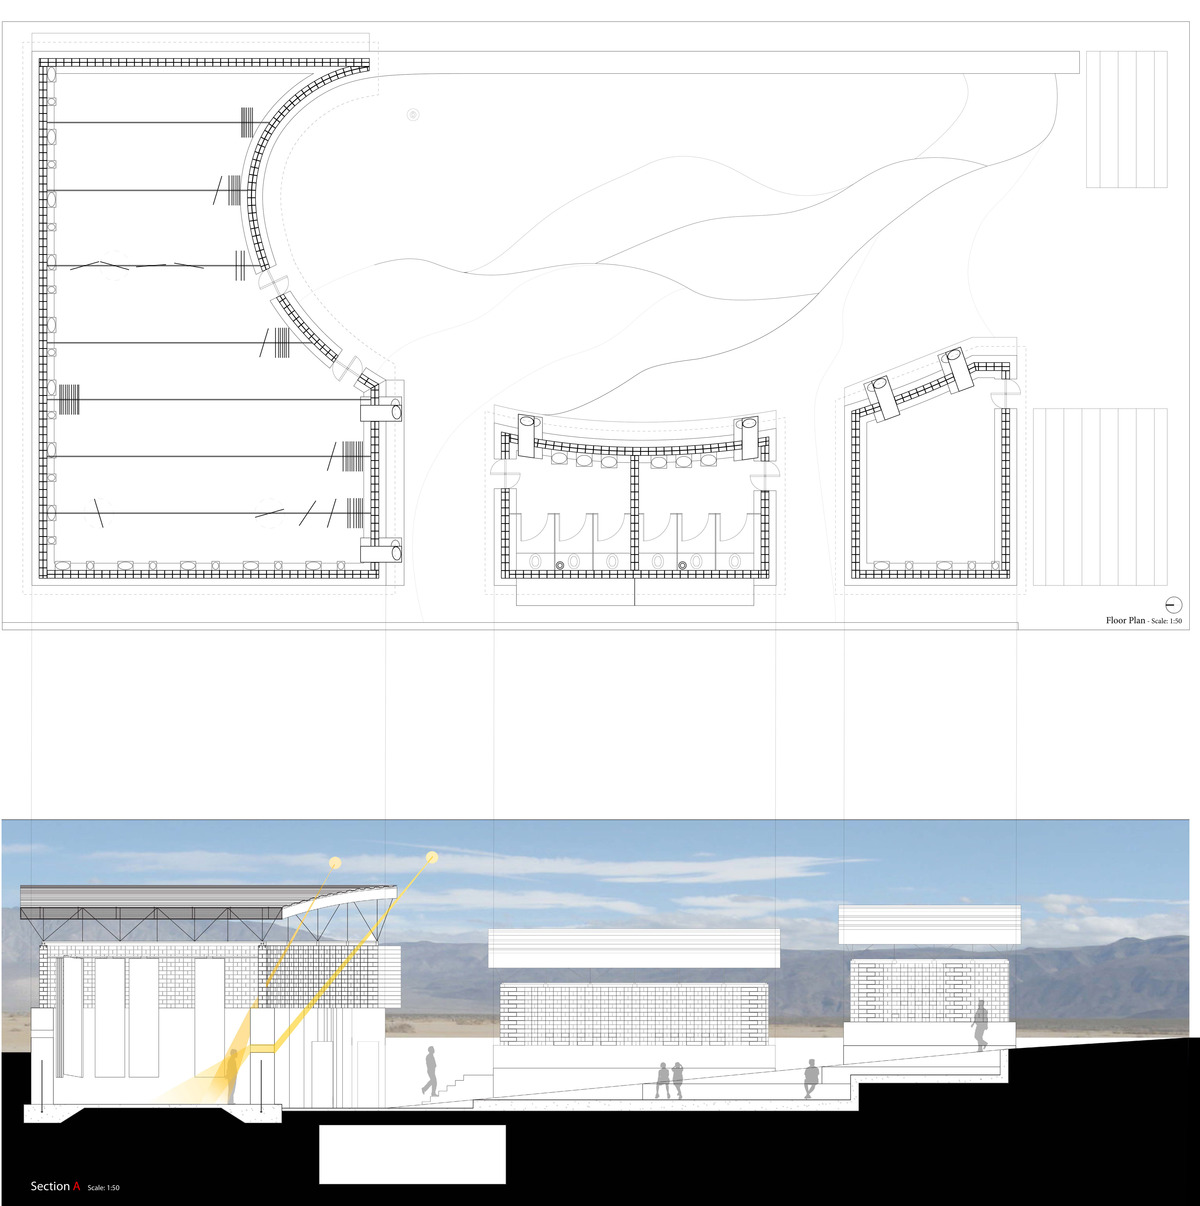 the plan and section of the design